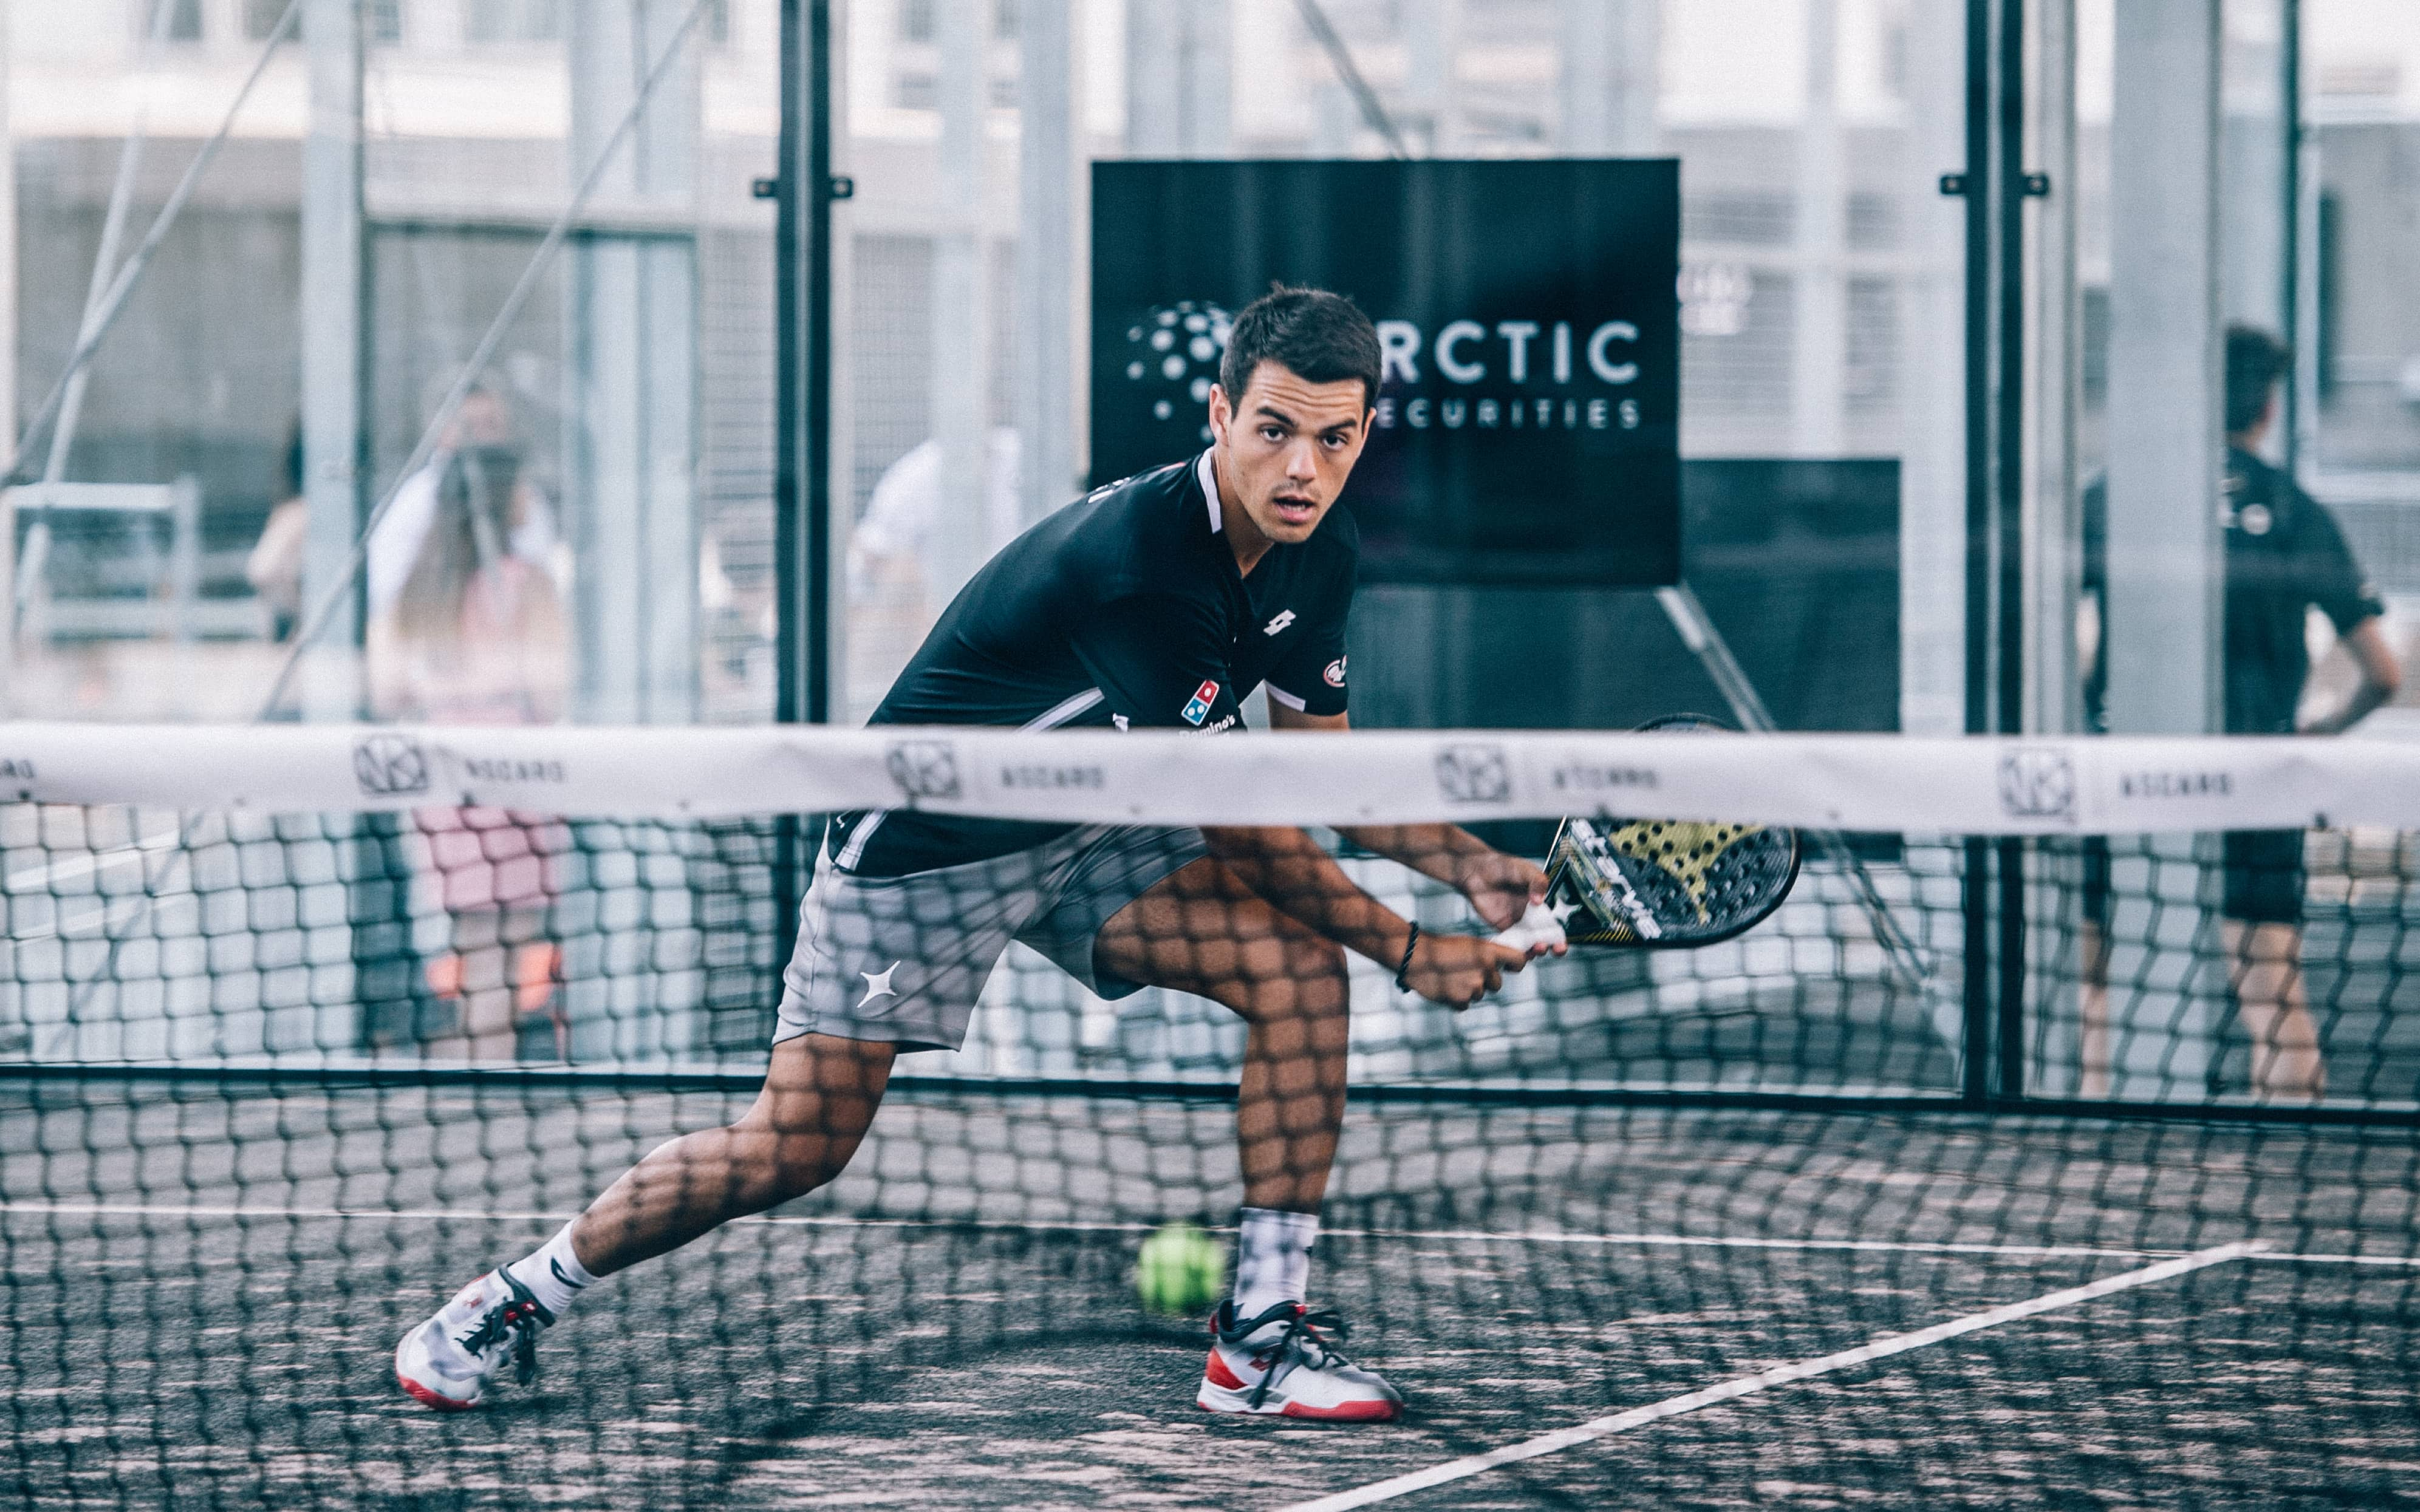 Has padel become the choice sport in Sweden